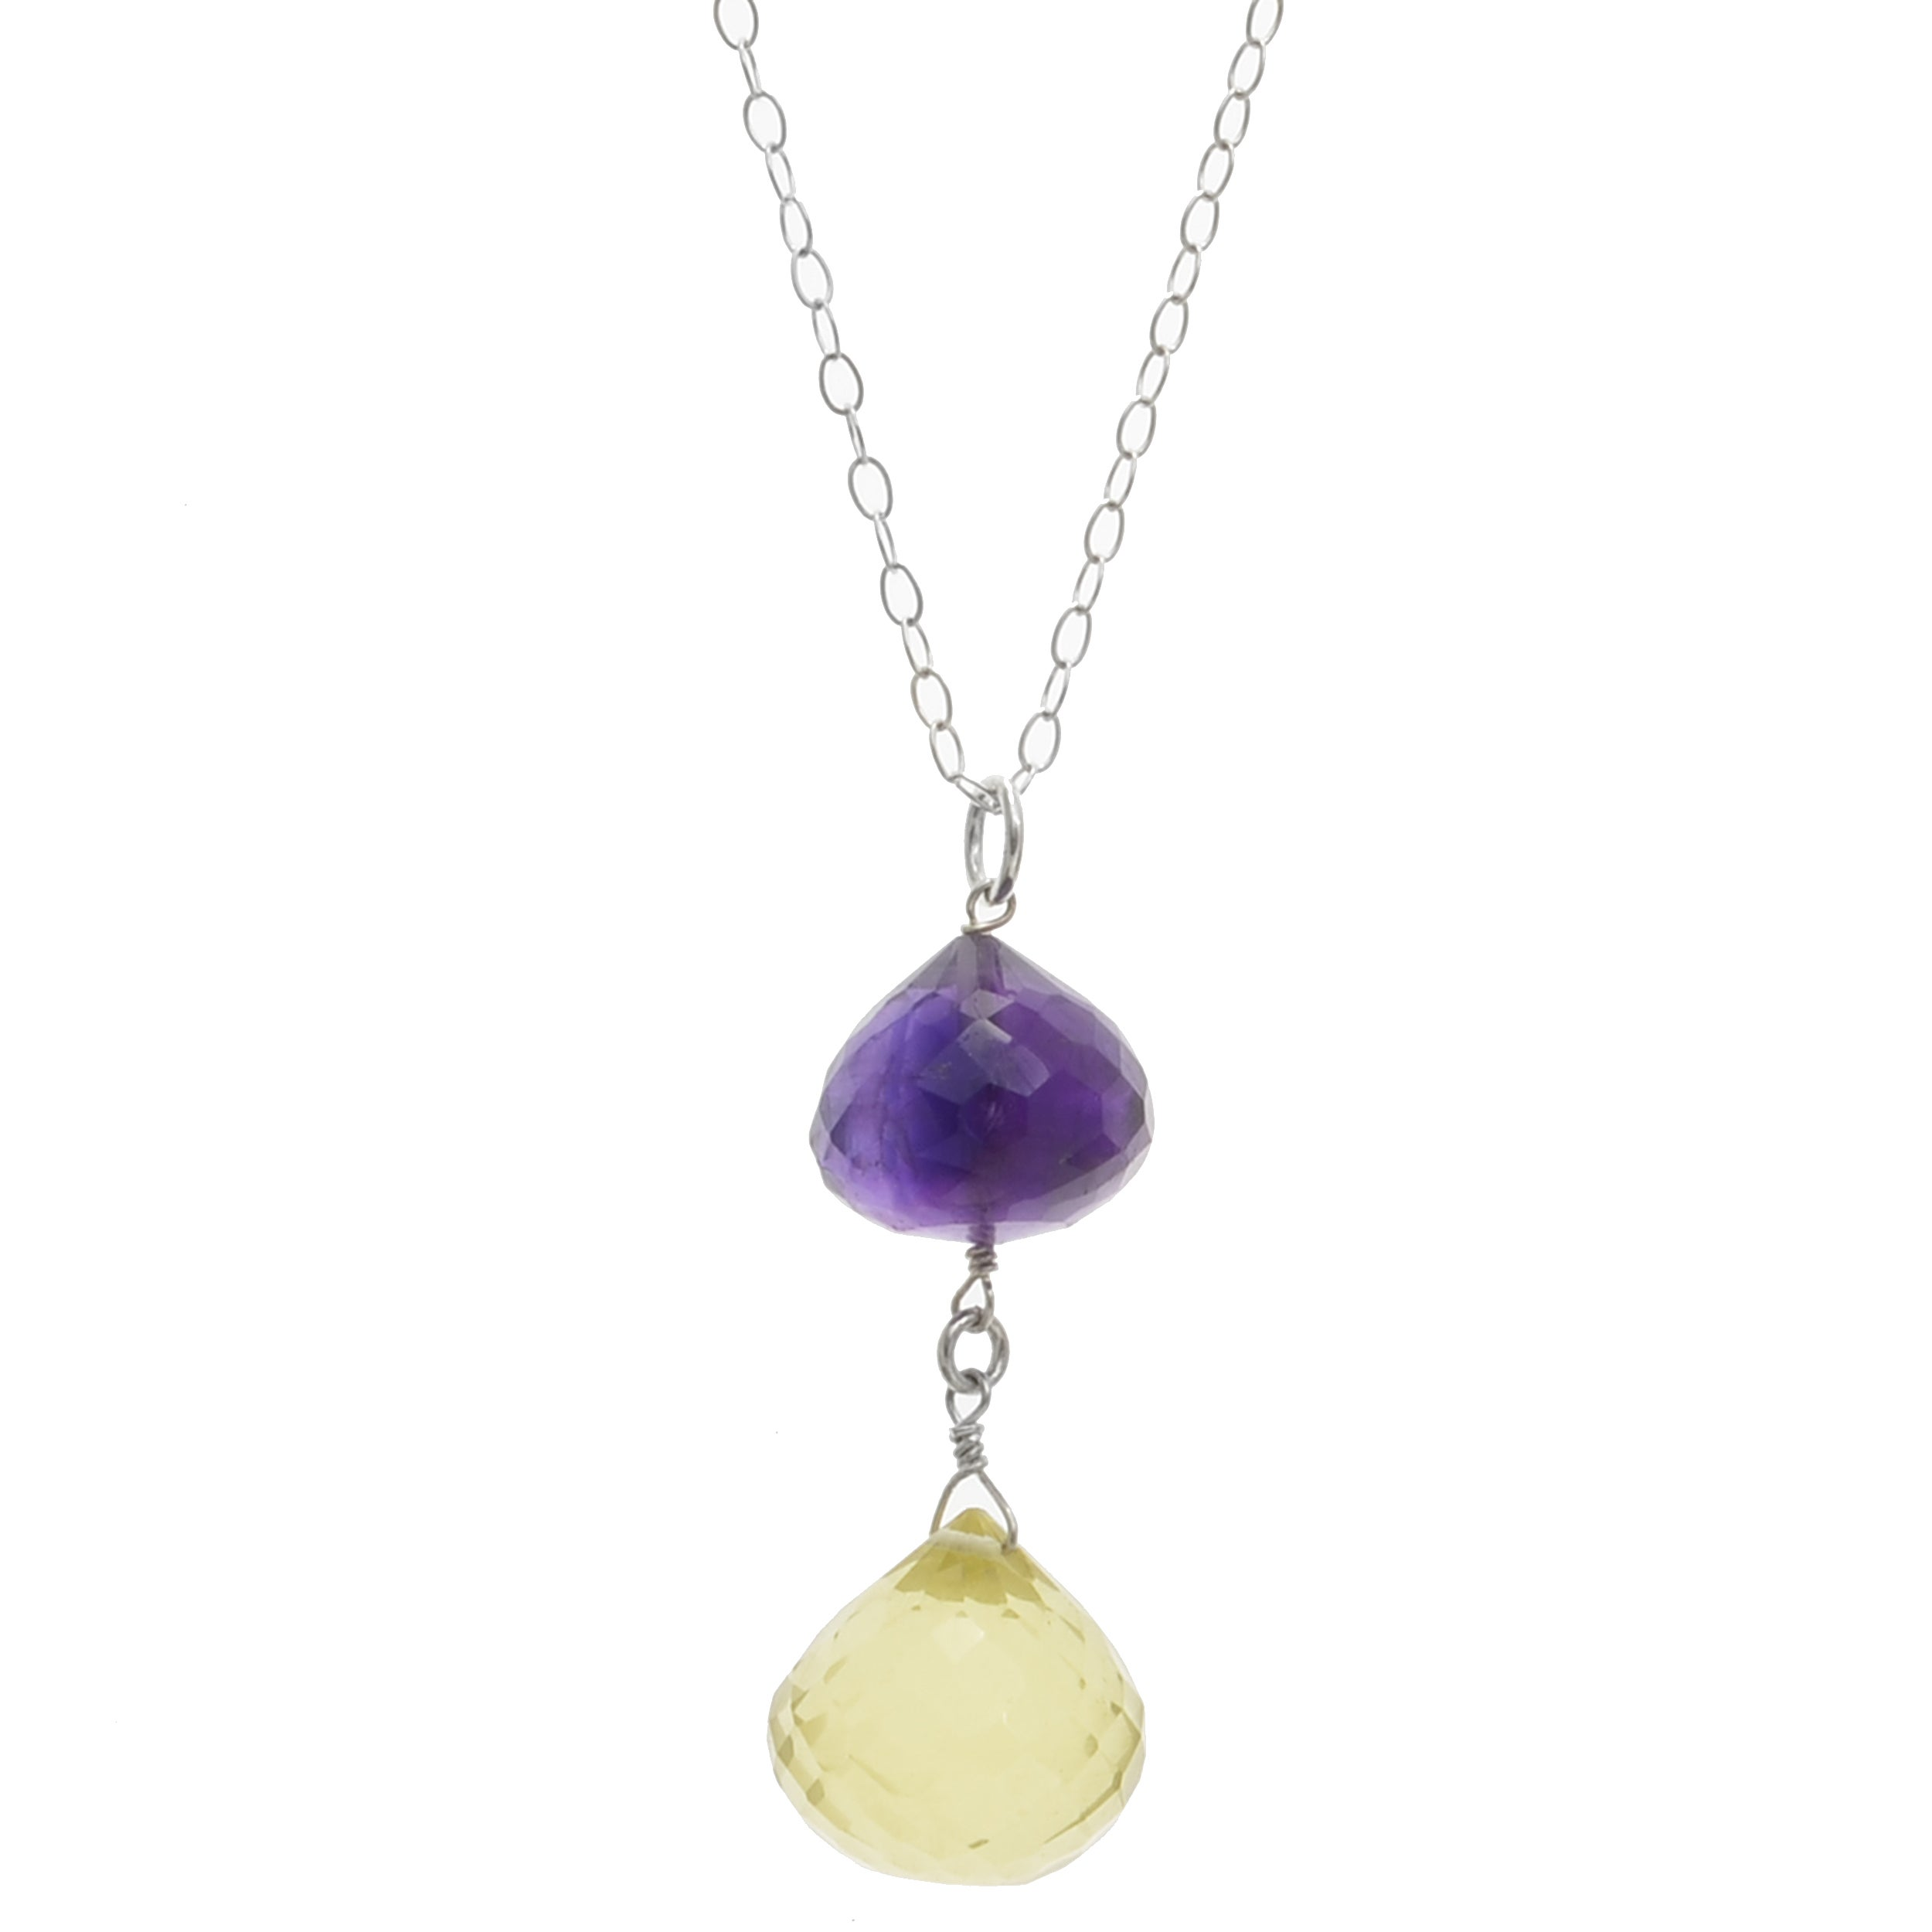 14K Yellow Gold Gemstone Necklace with Lemon Topaz Dangling 18 Inches